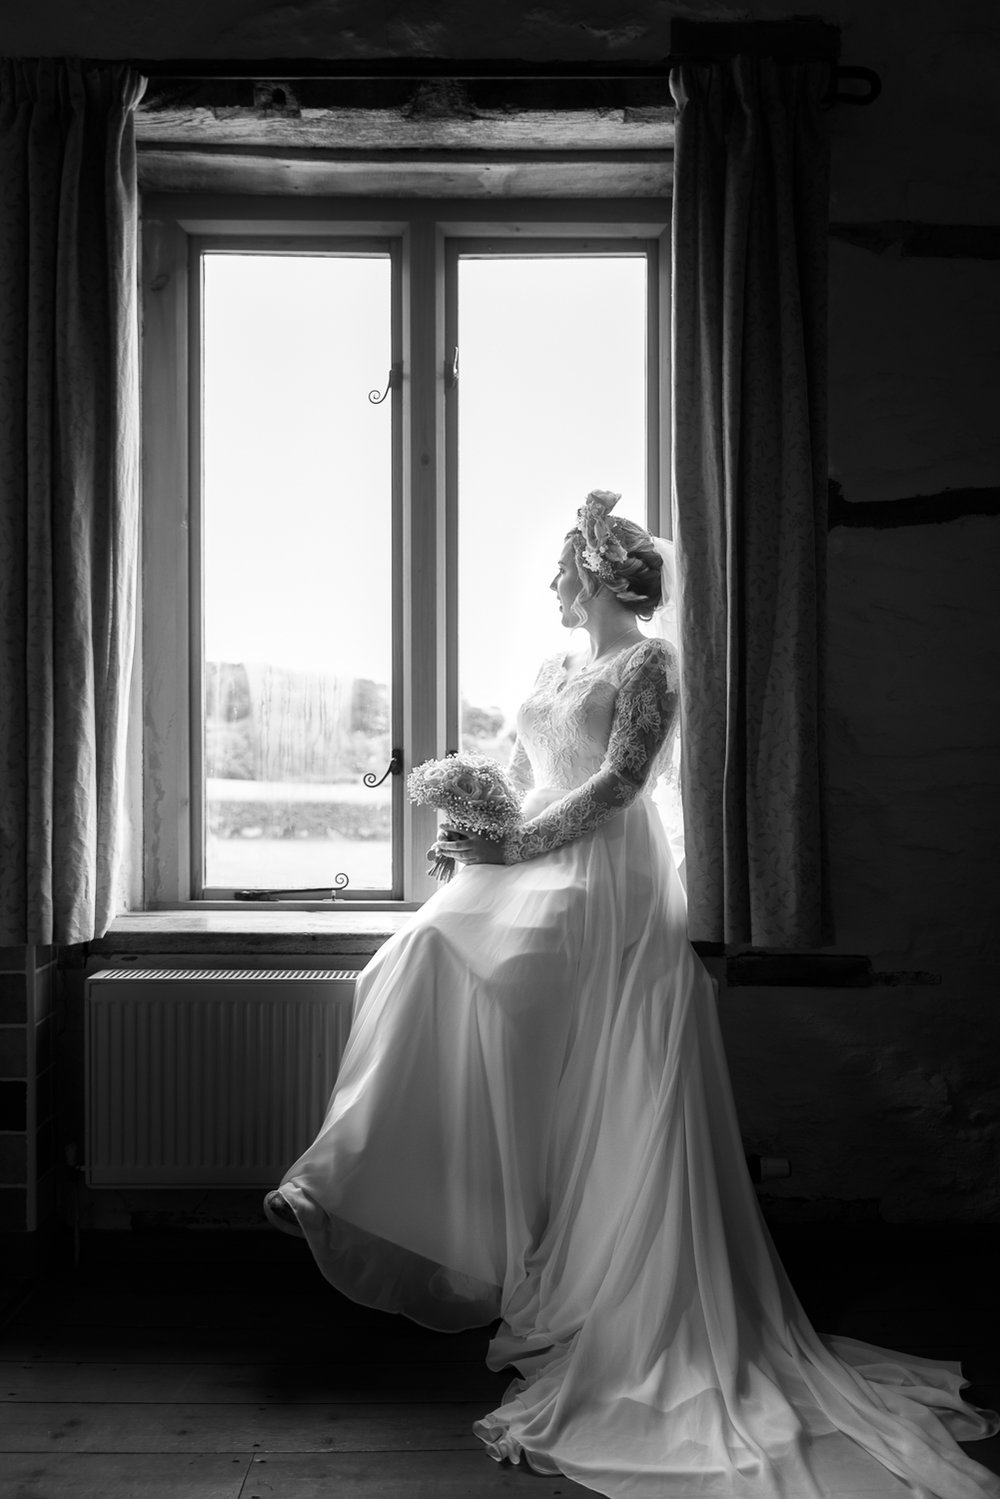 bride-in-window-01-bw.jpg